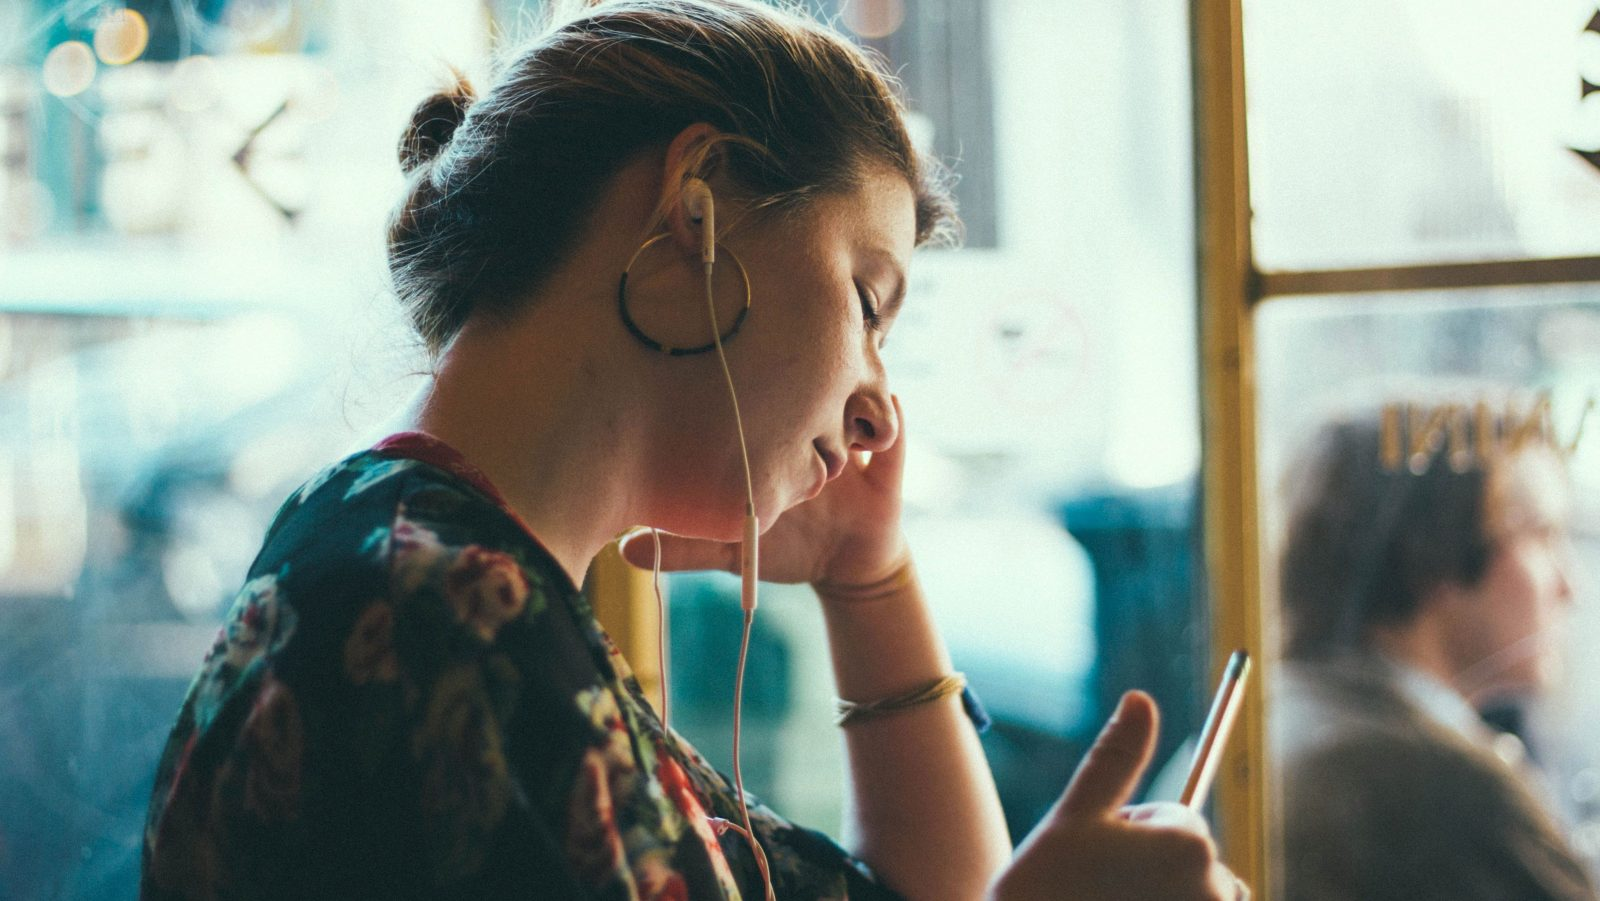 photo of a woman in a cafe, working